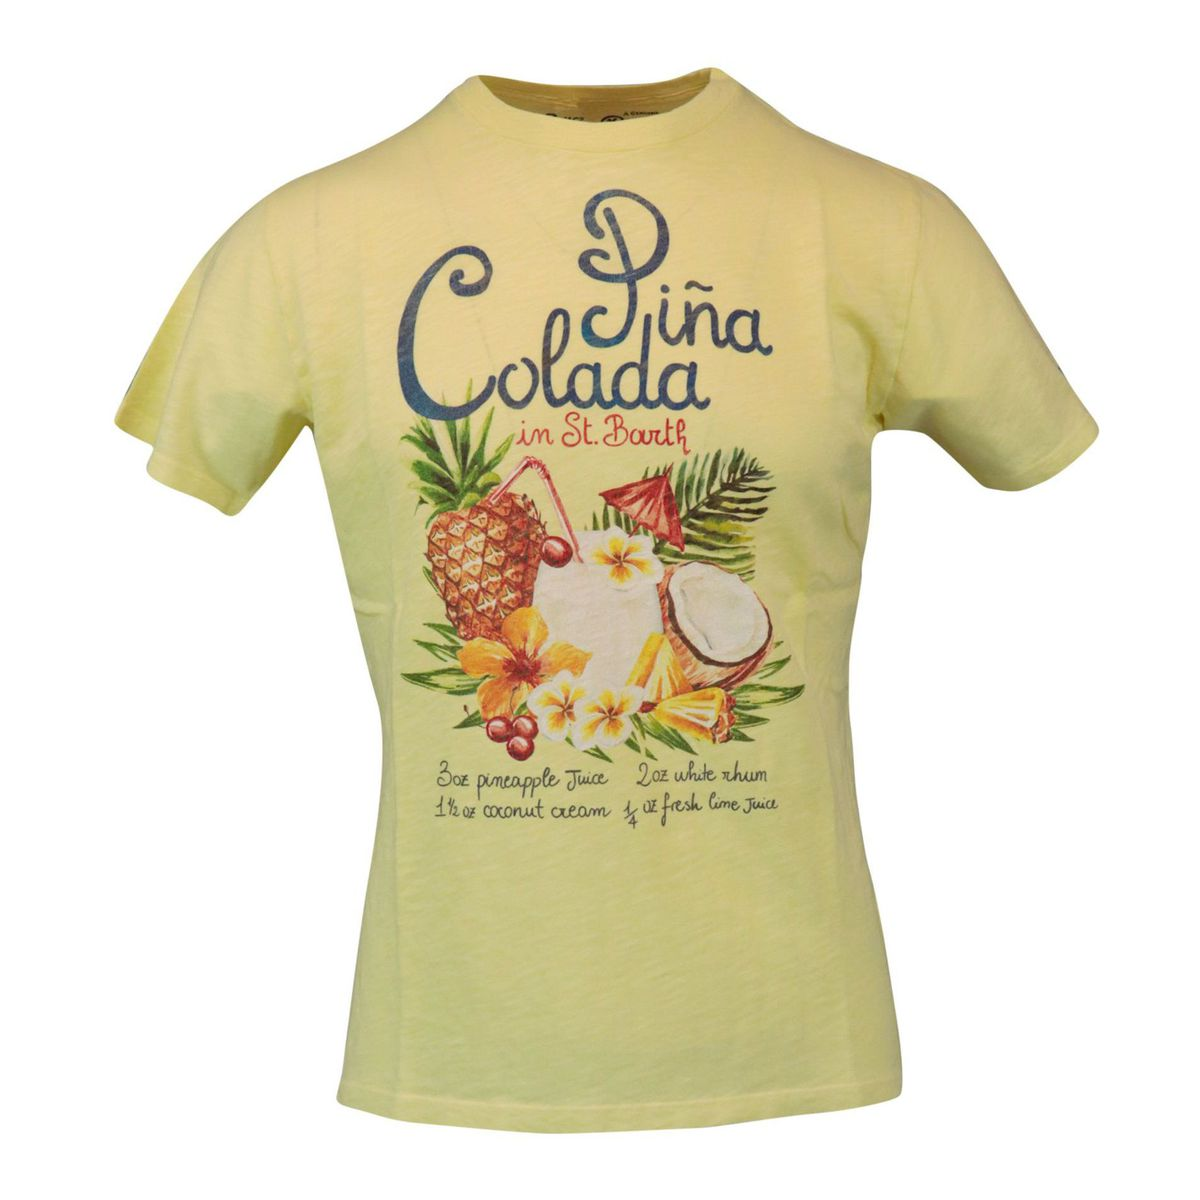 Pina Colada 92 cotome t-shirt Yellow MC2 Saint Barth